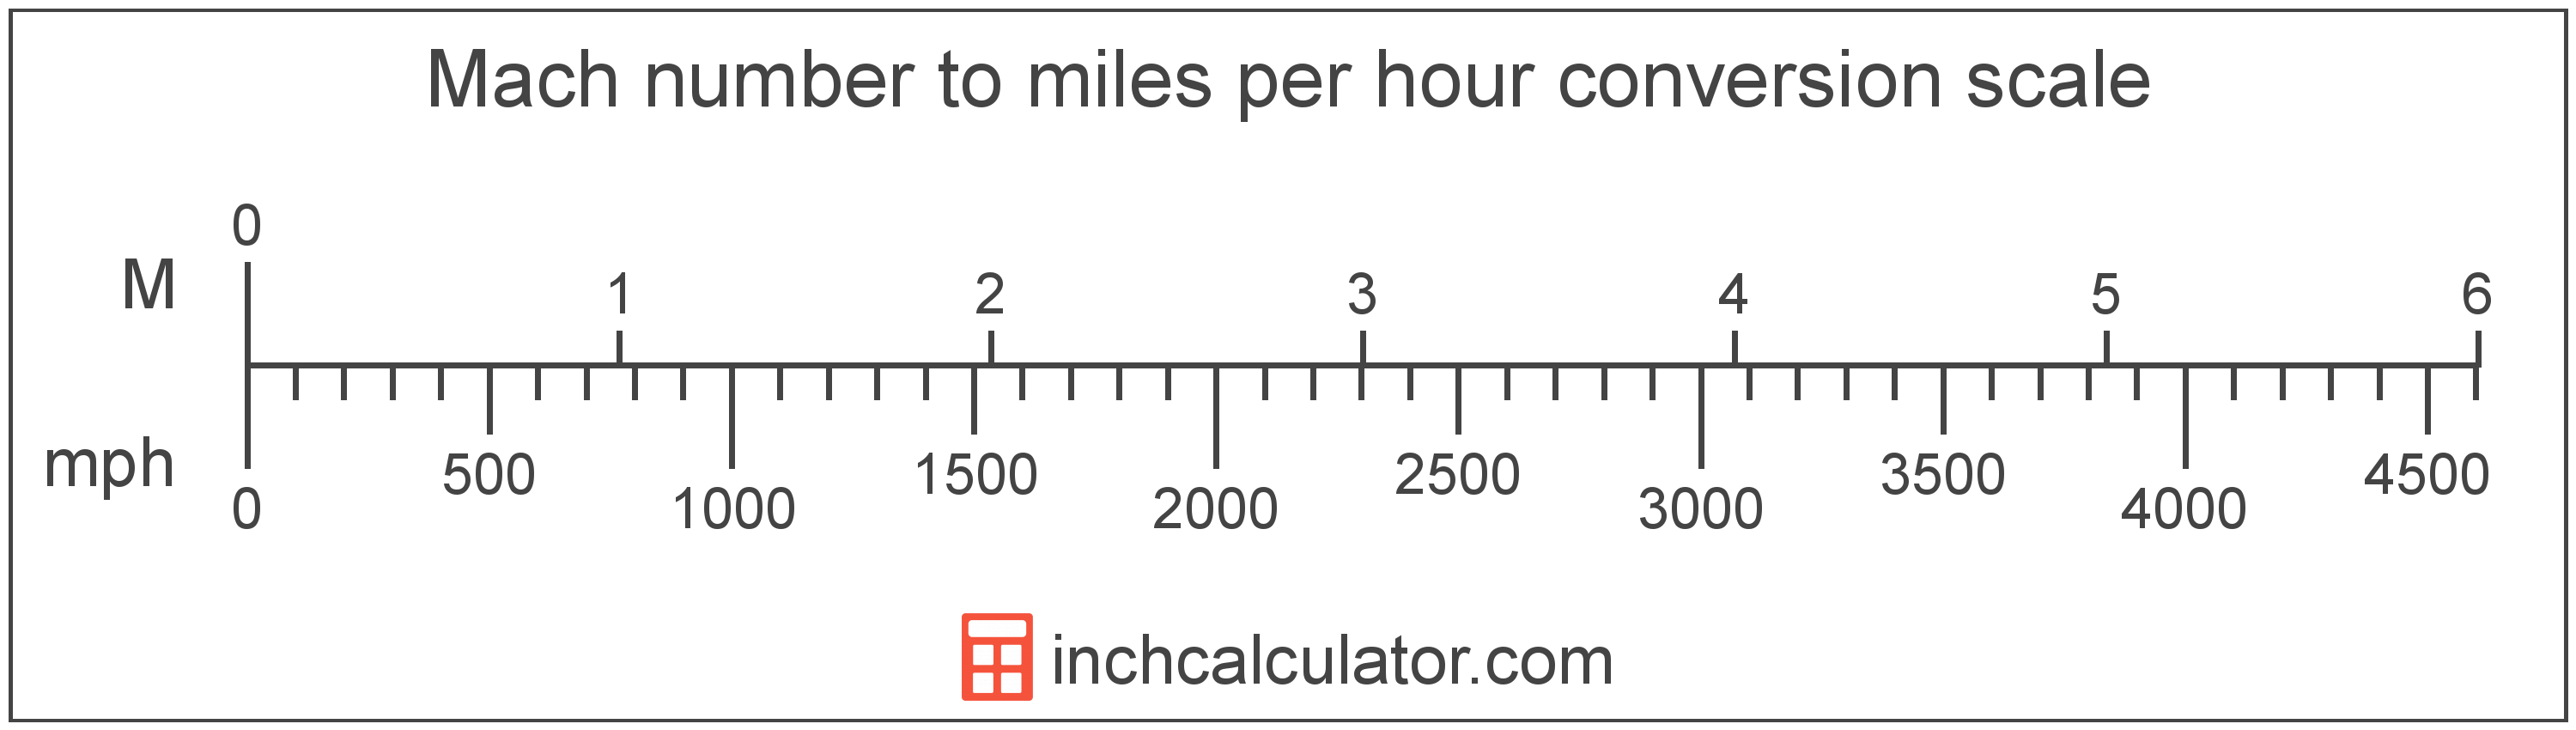 conversion scale showing Mach number and equivalent miles per hour speed values